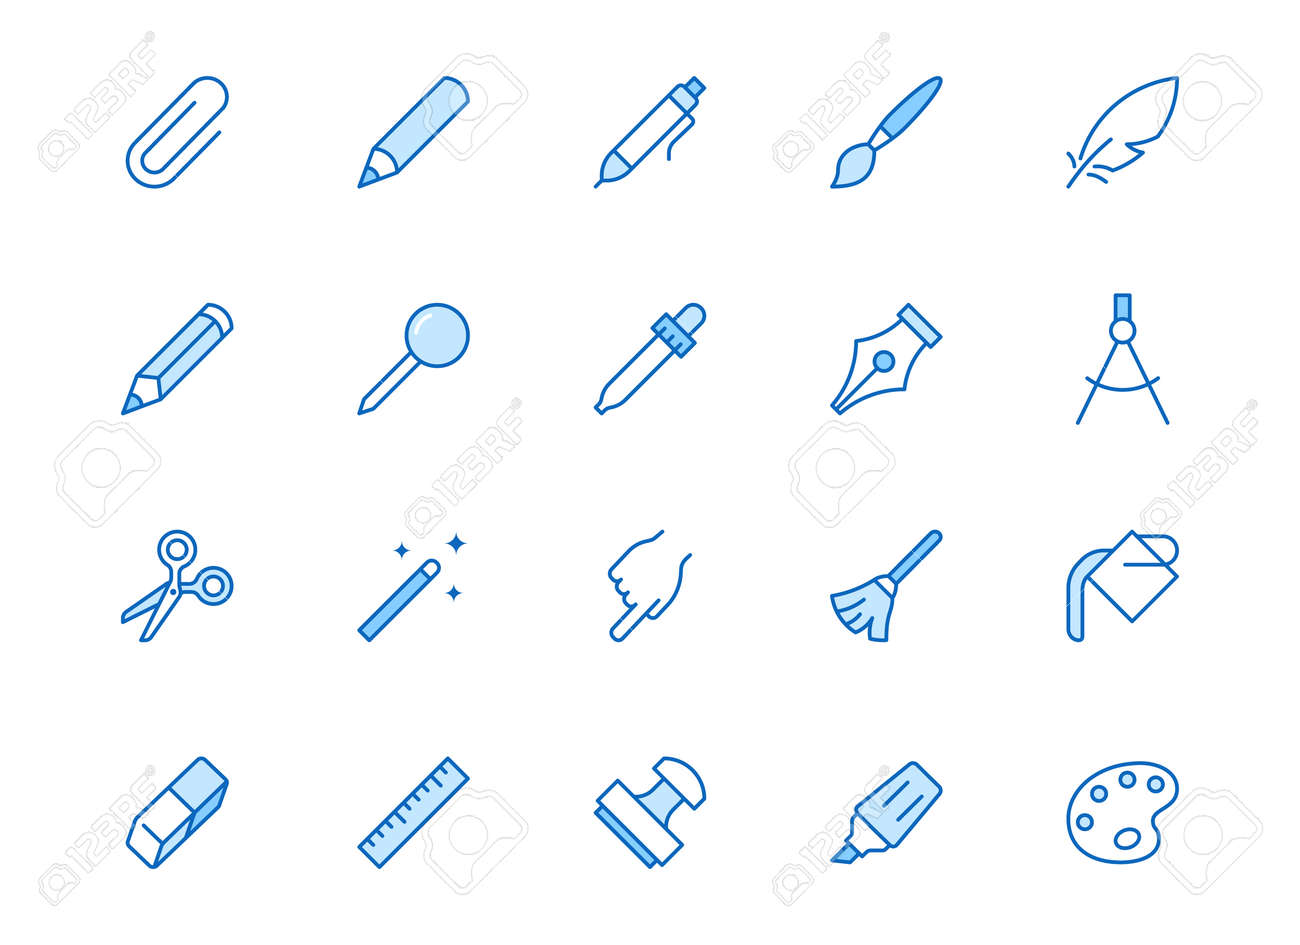 Drawing tools line icons set. Pen, pencil, paintbrush, dropper, stamp, smudge, paint bucket minimal vector illustrations. Simple outline signs for web interface. Blue color, Editable Stroke. - 158753318